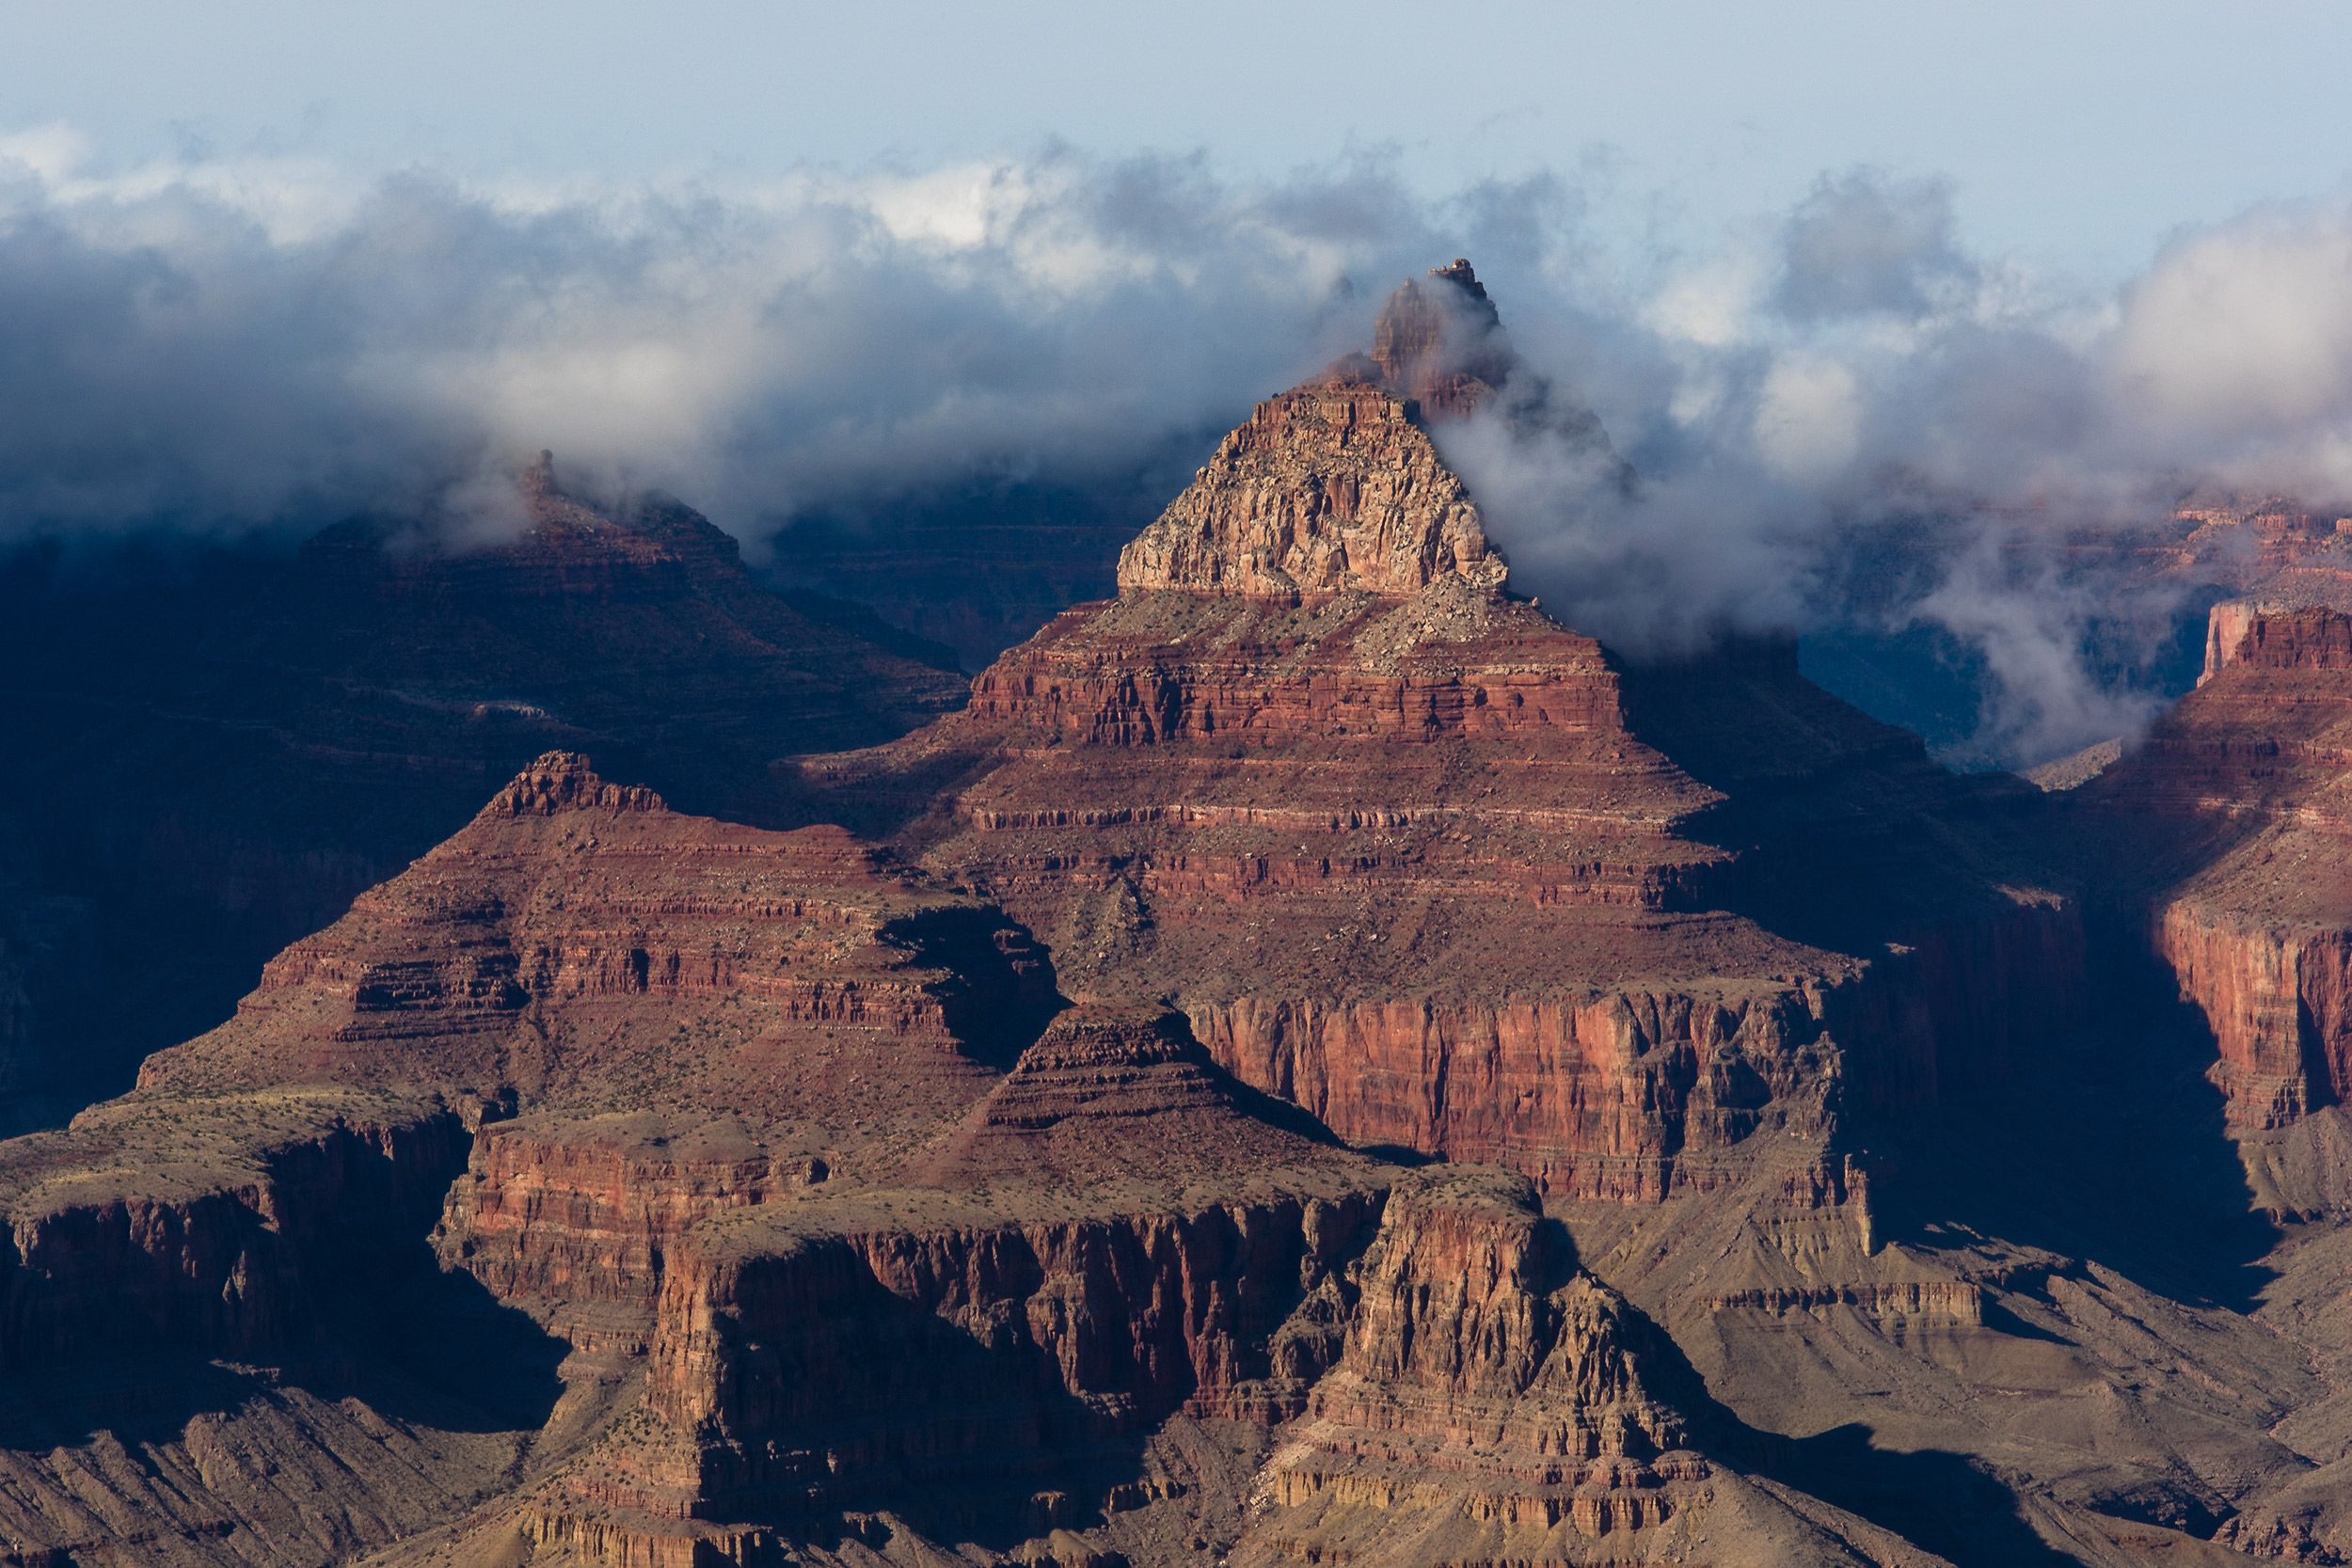 NATLPARKING_travel_rv_adventure_grandcanyon_1300_WB